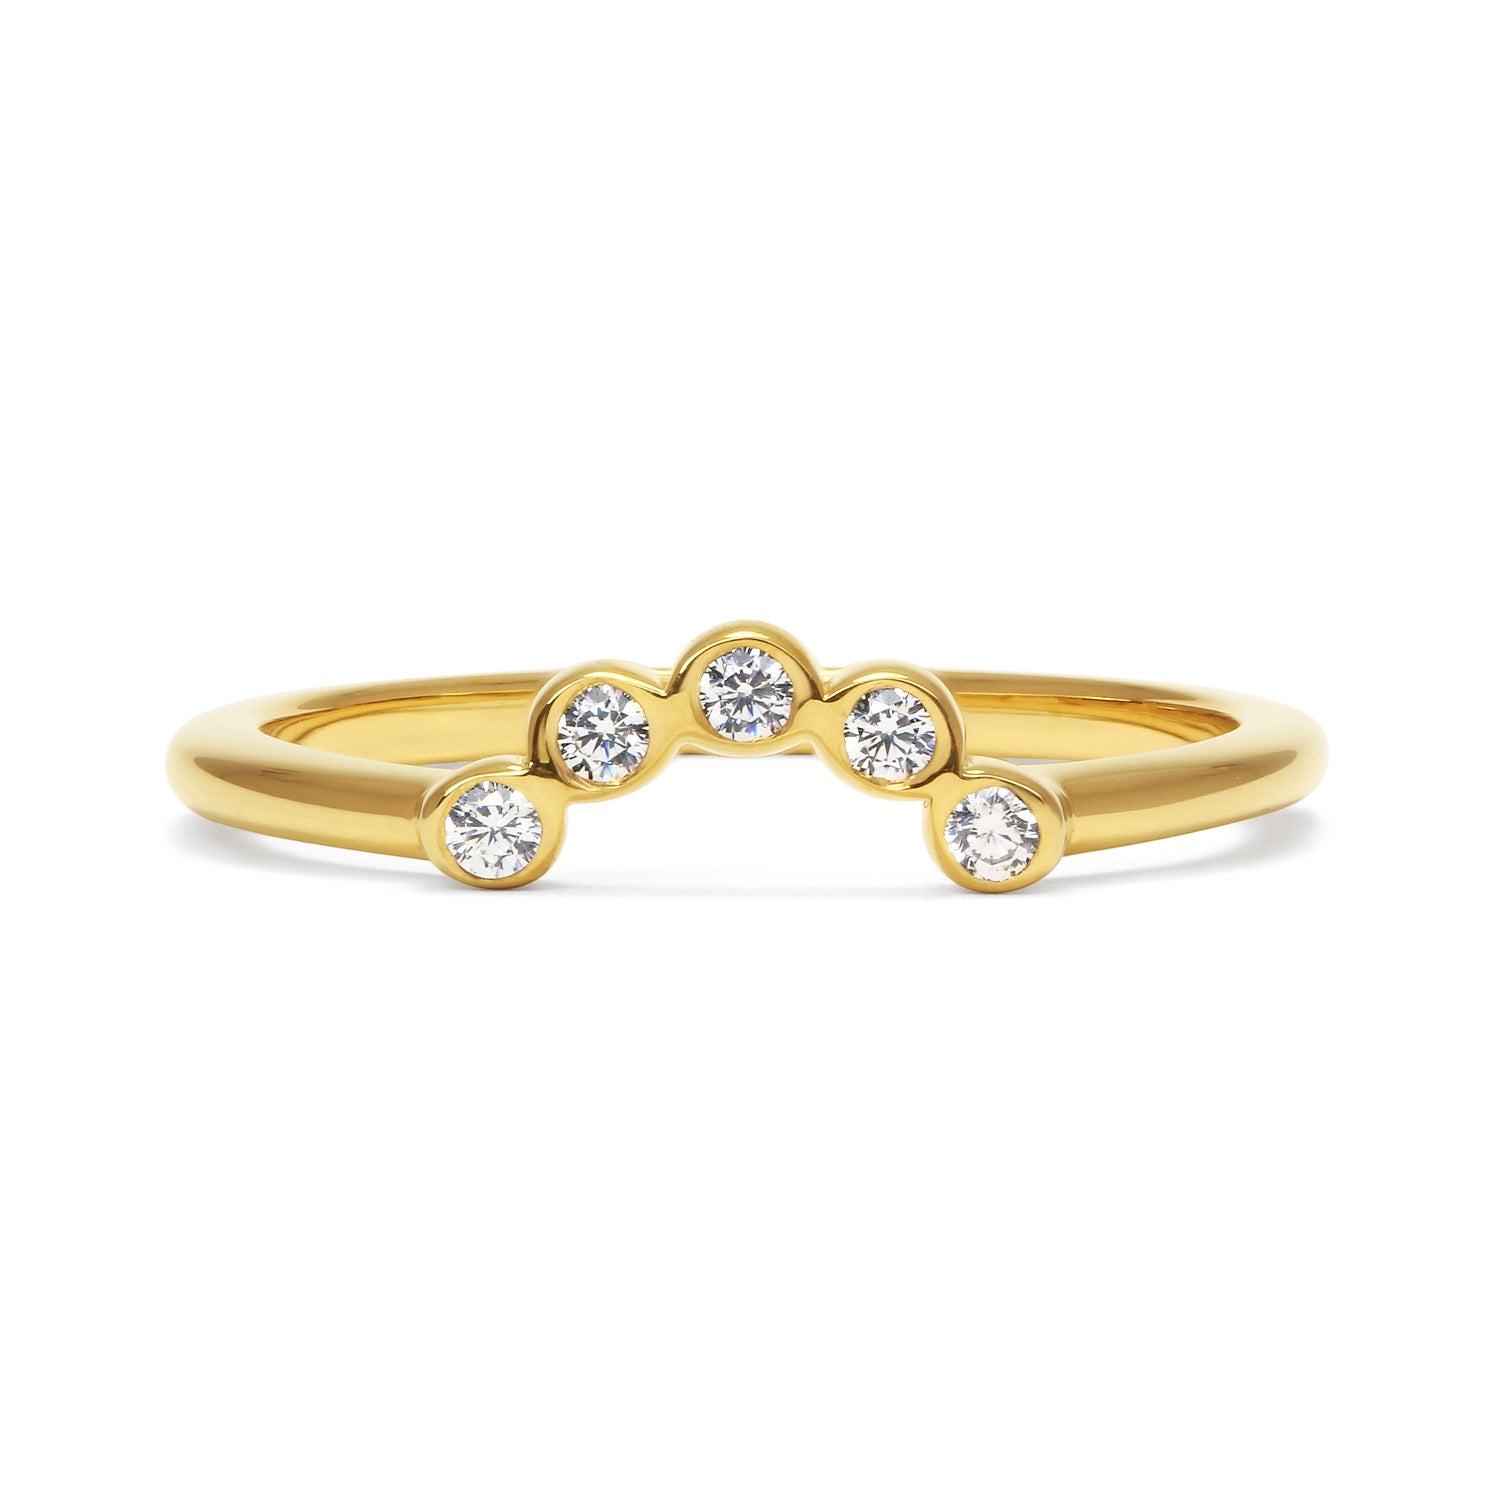 Diamond Coronet Ethical Ring, 18ct Ethical Gold